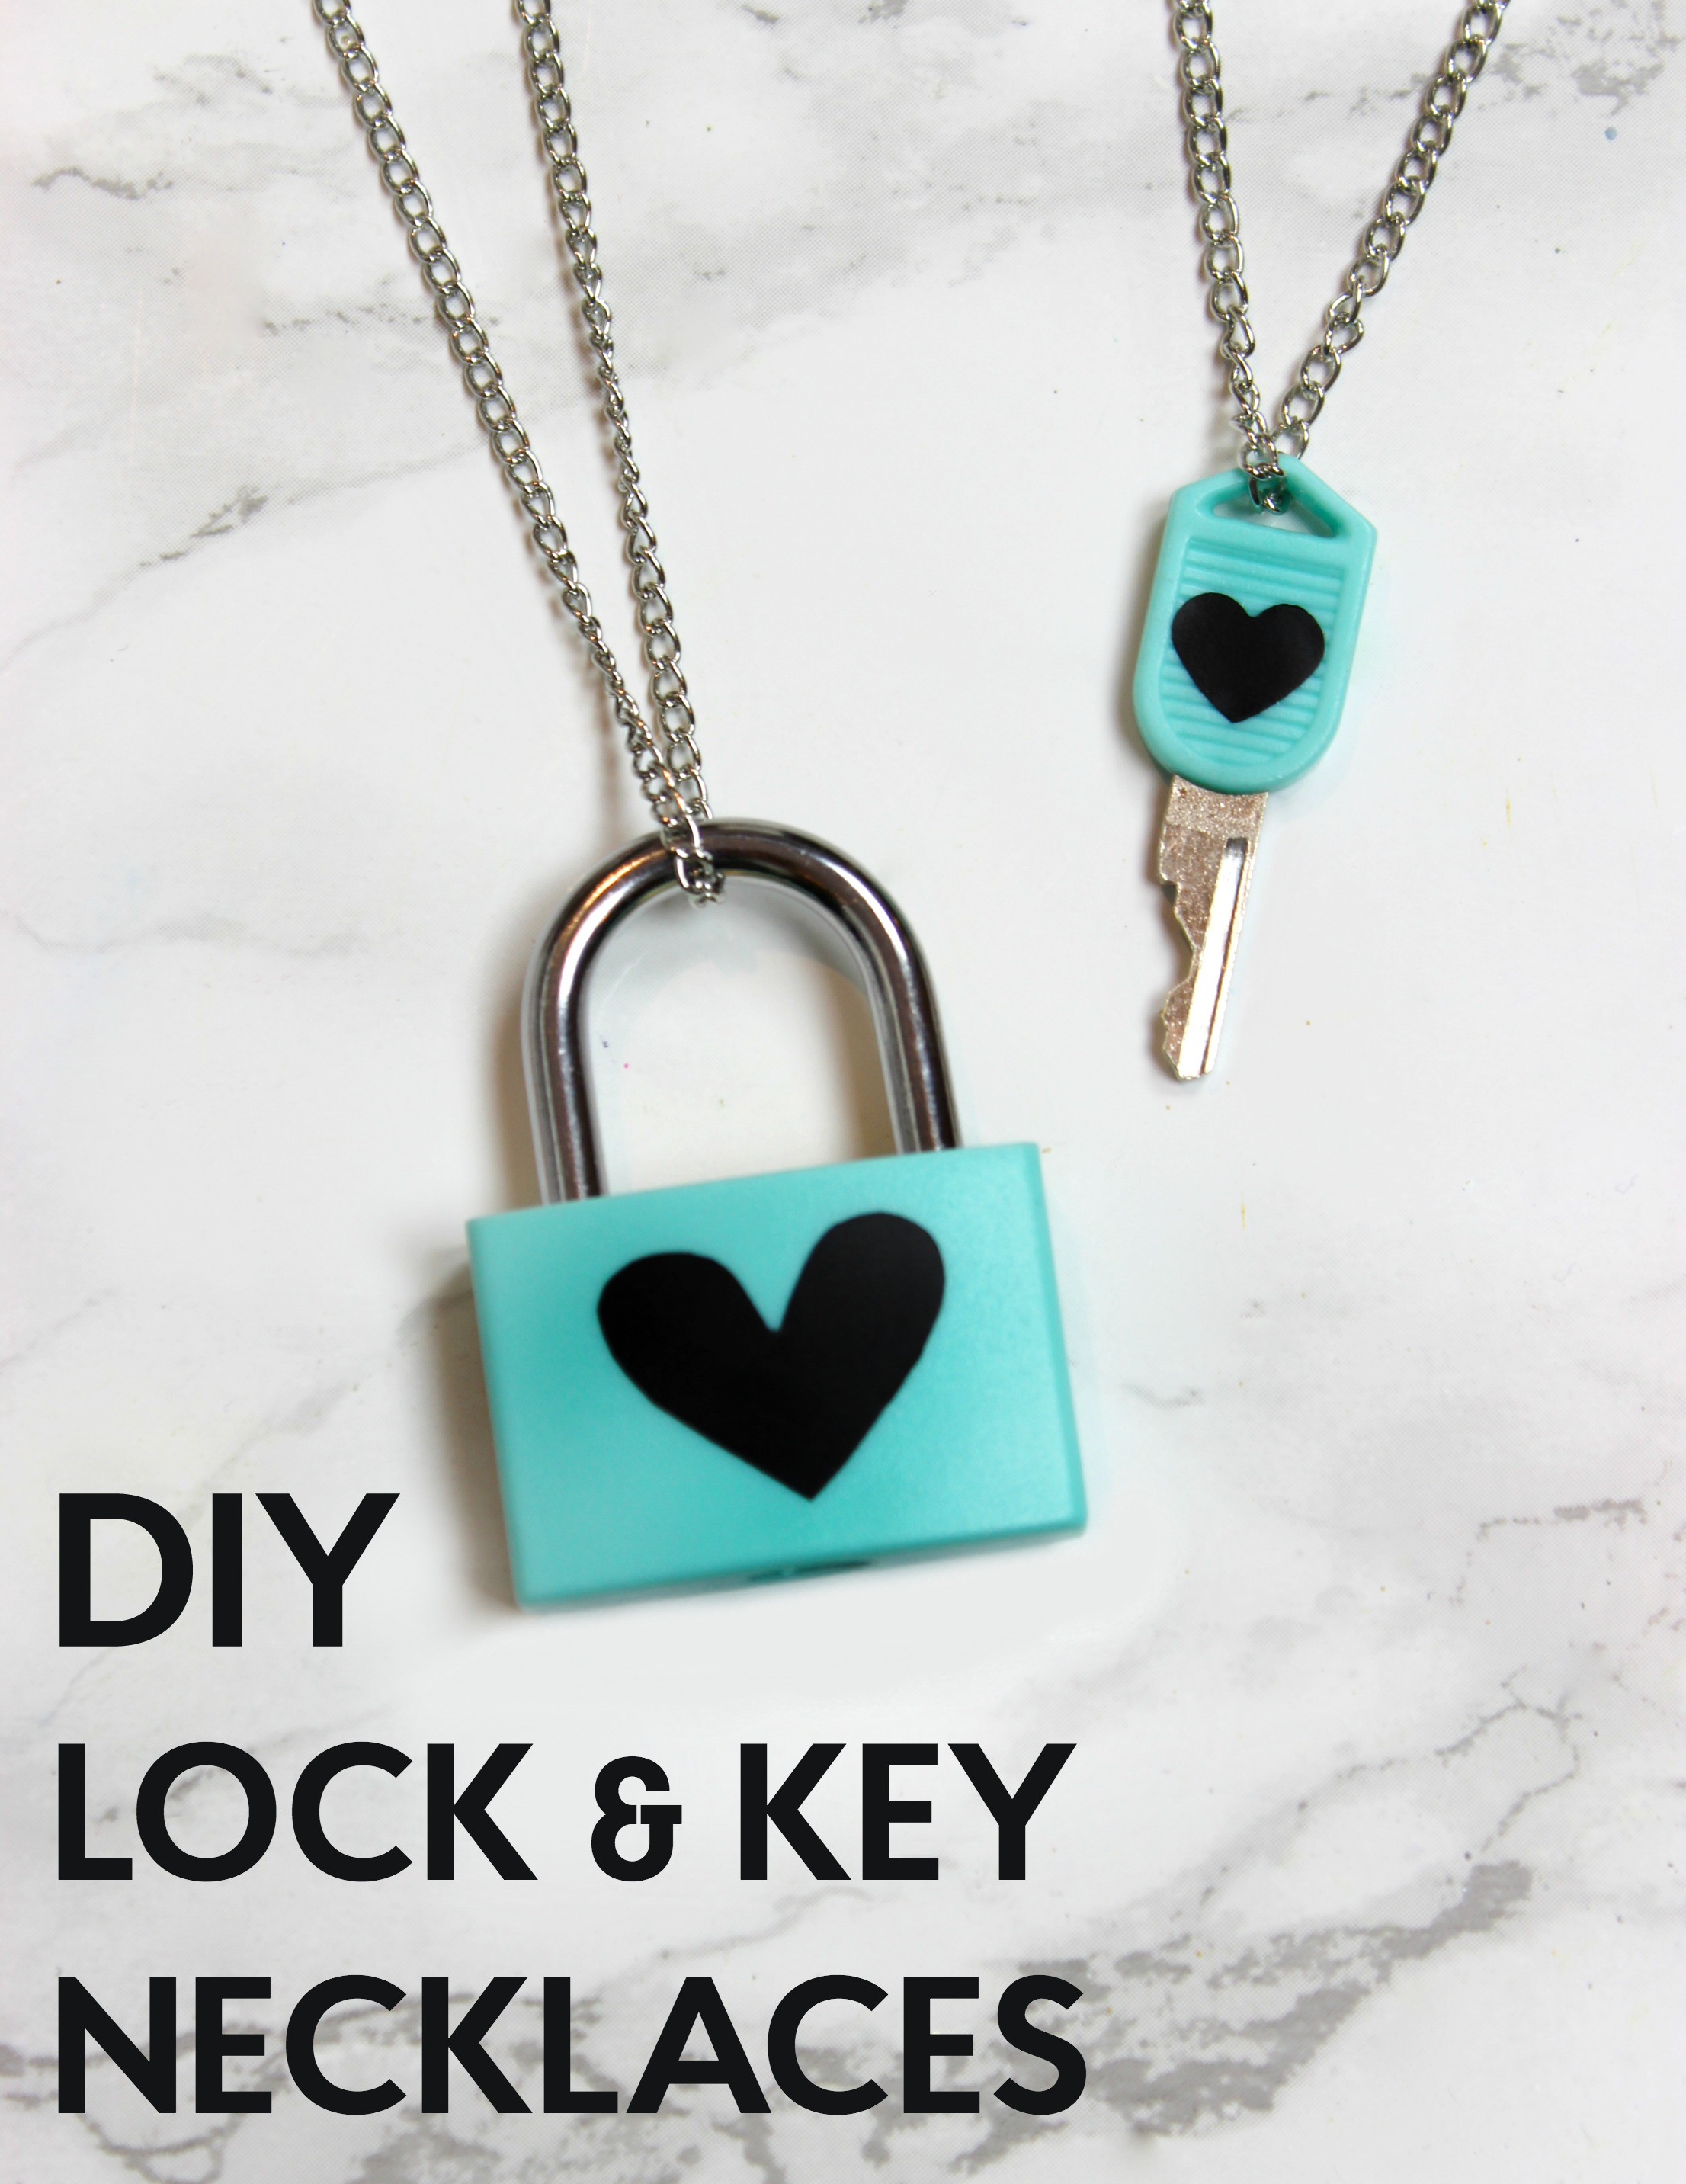 little padlock lock products pendant switzerland gold steel necklace tone rose stainless